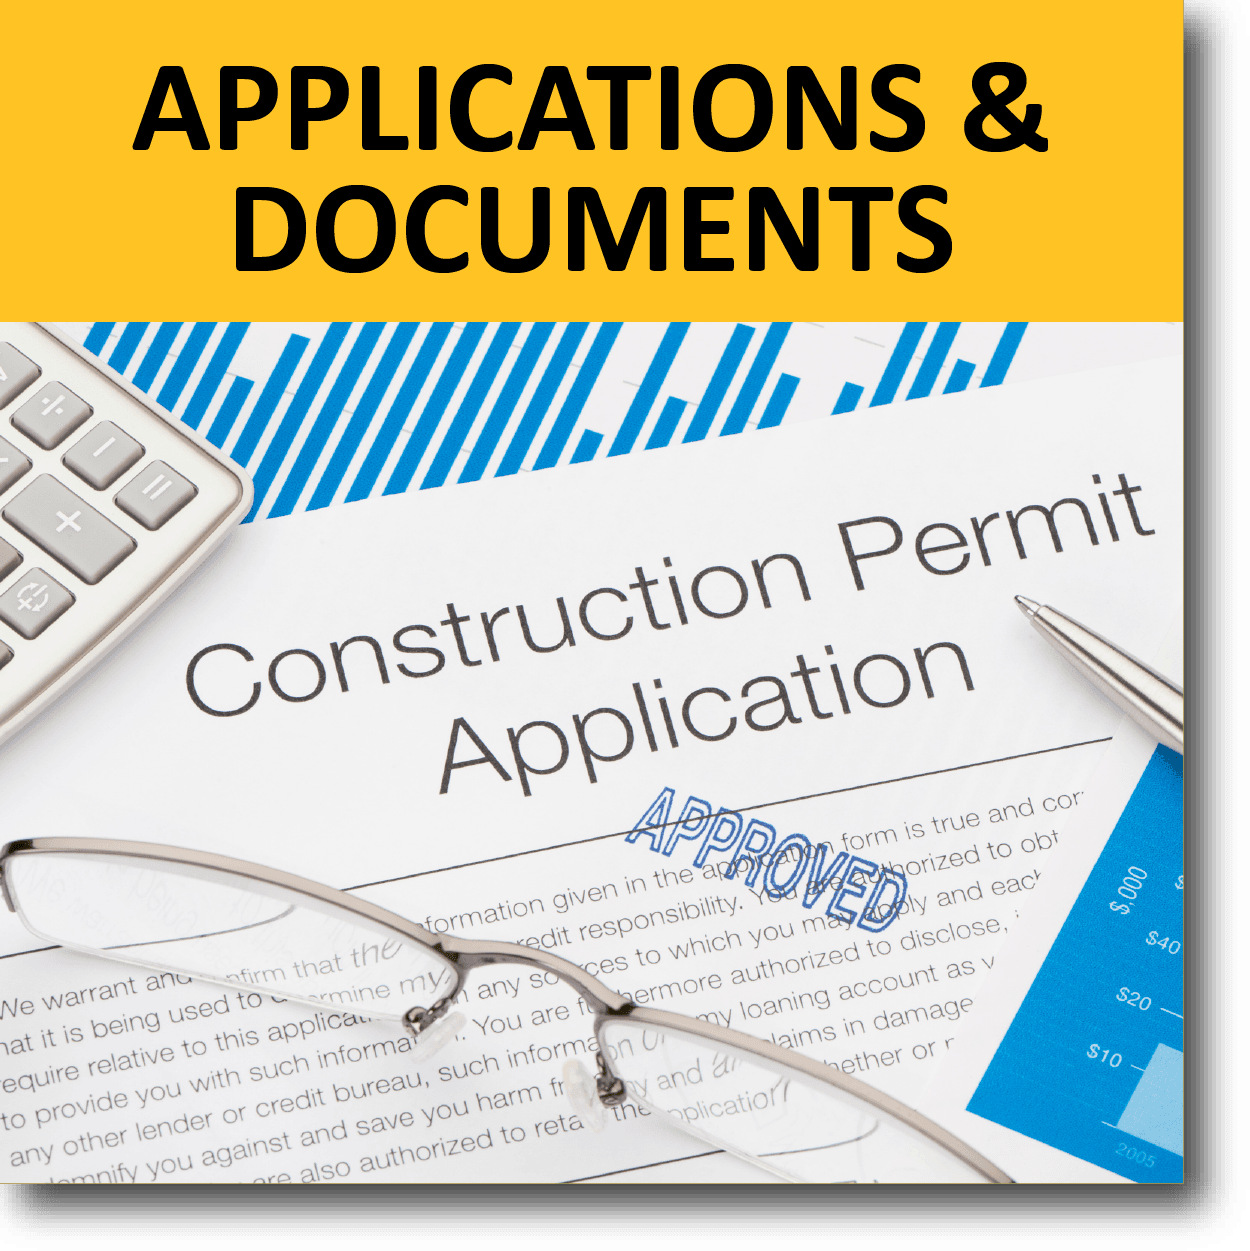 Applications and Documents